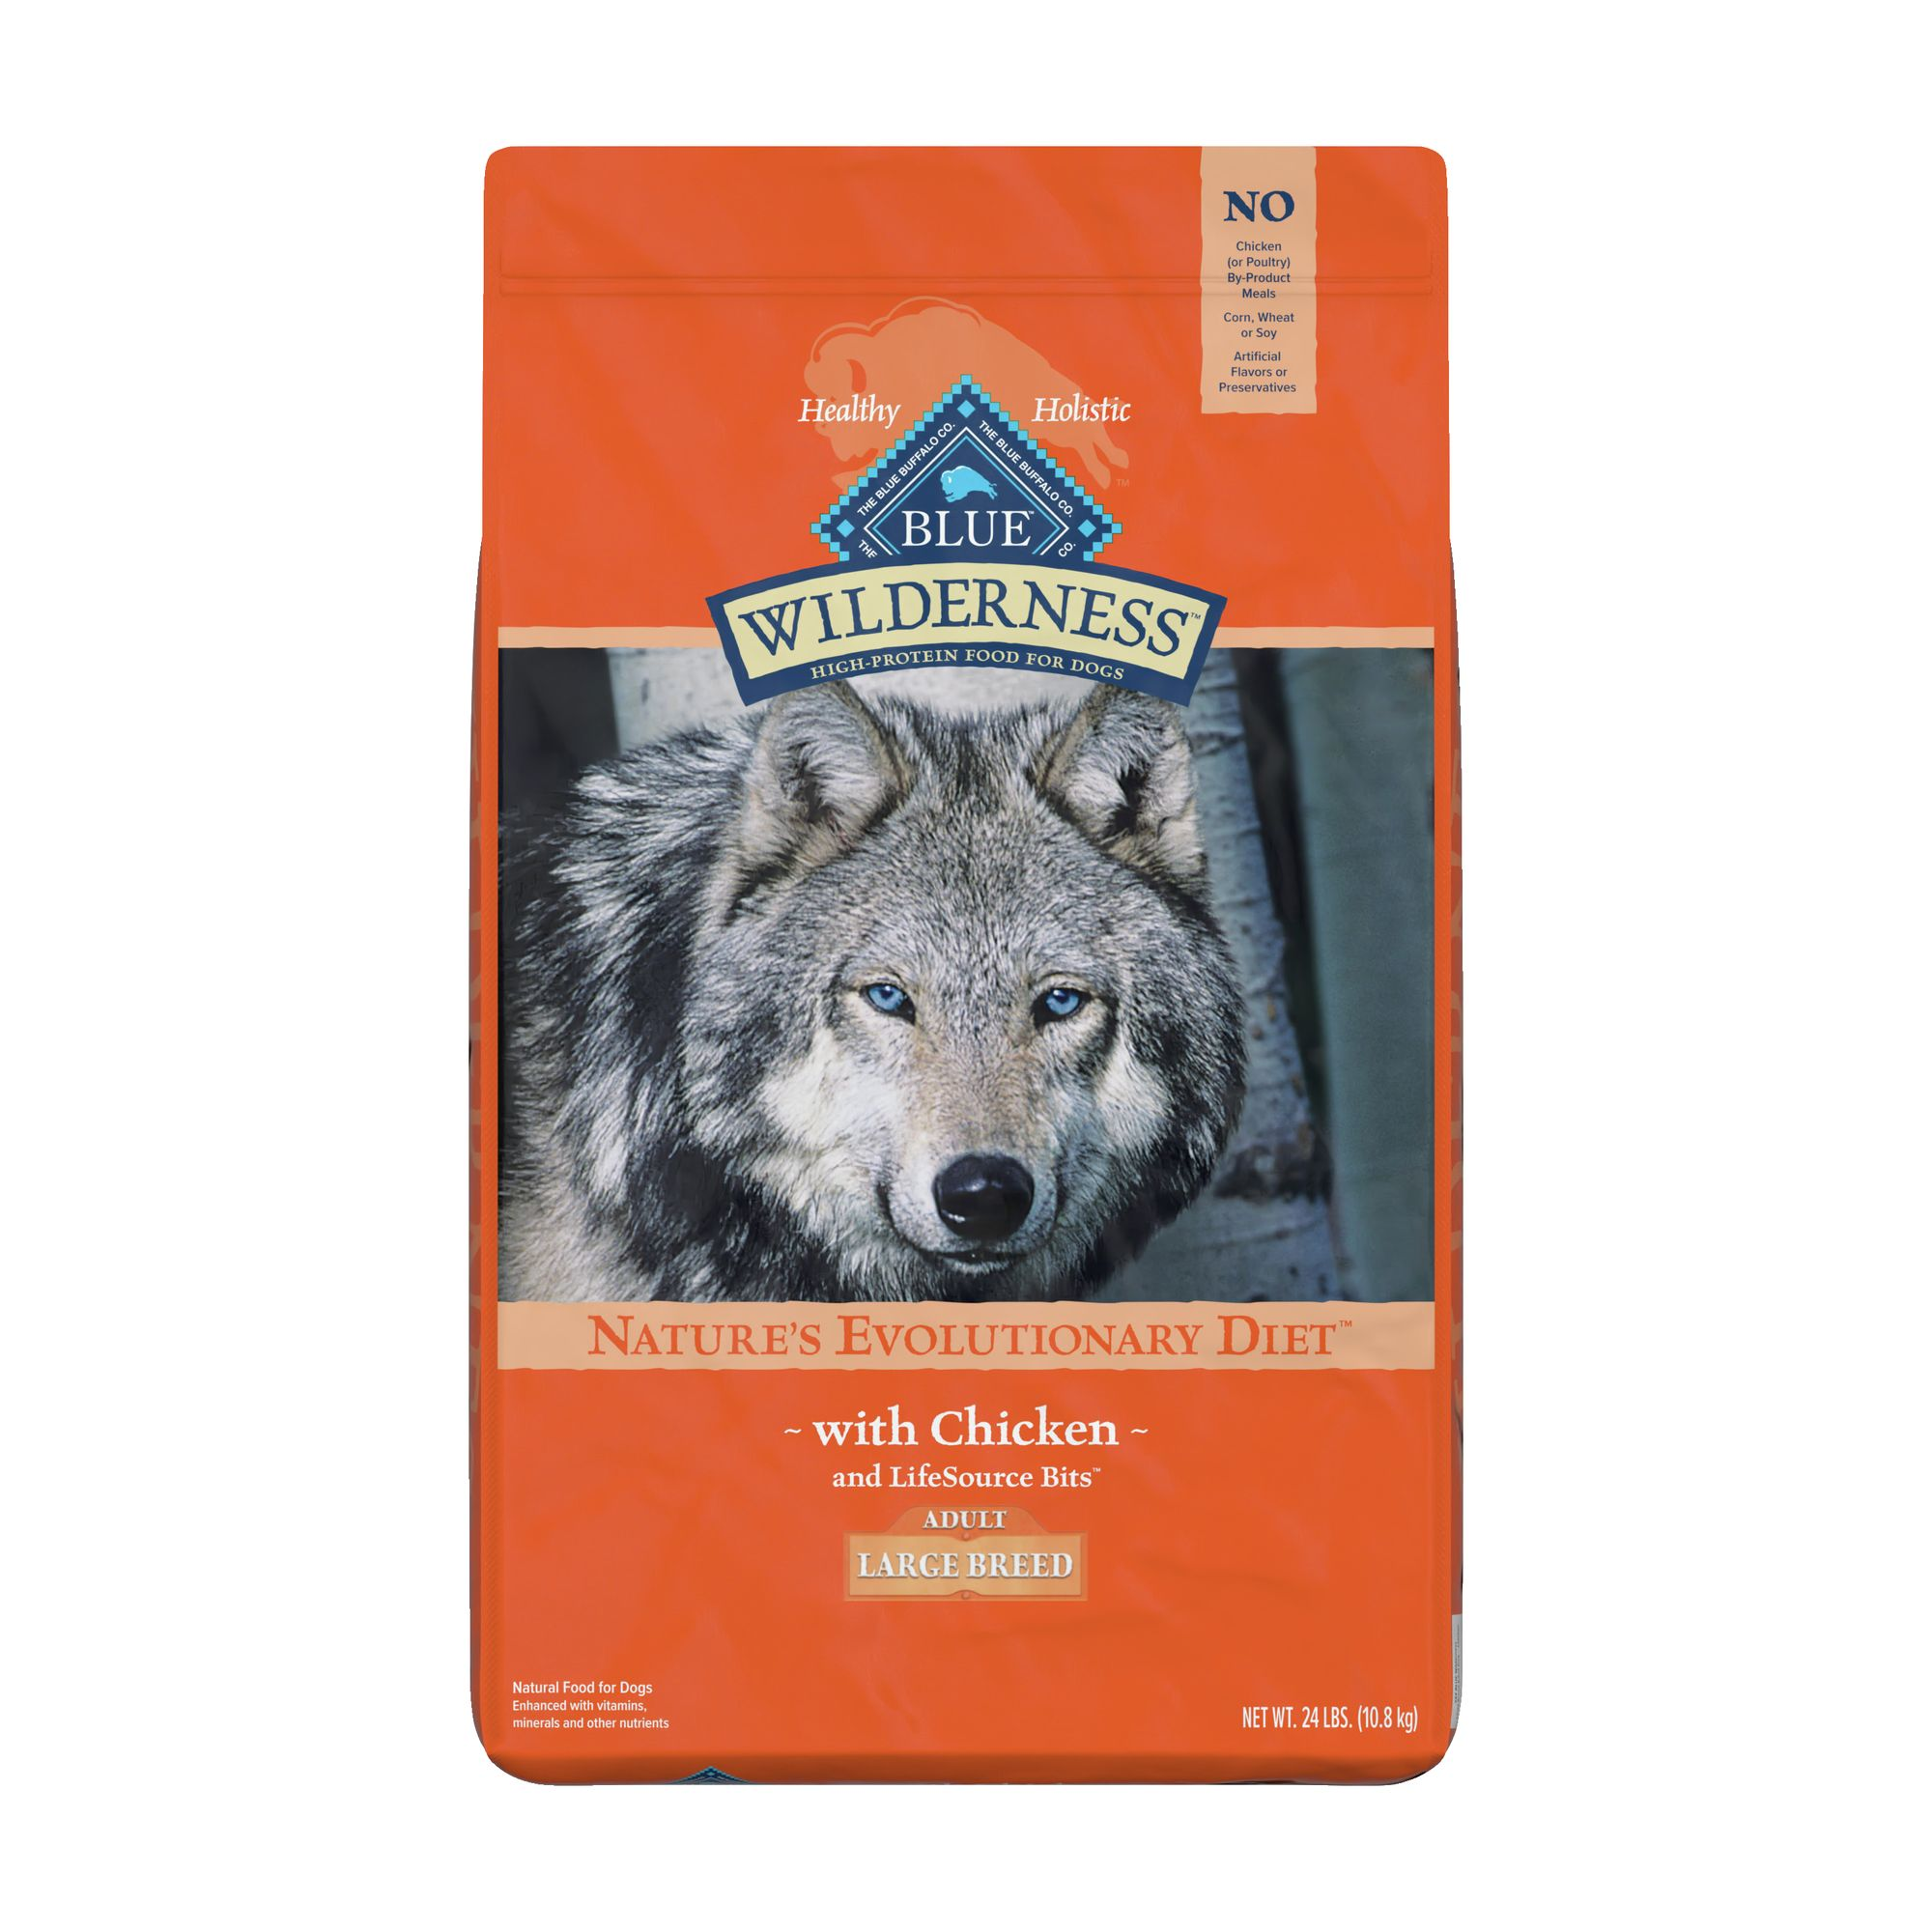 Blue Wilderness Large Breed Adult Dog Food - Grain Free, Natural, Chicken size: 24 Lb, Blue Buffalo 5162729